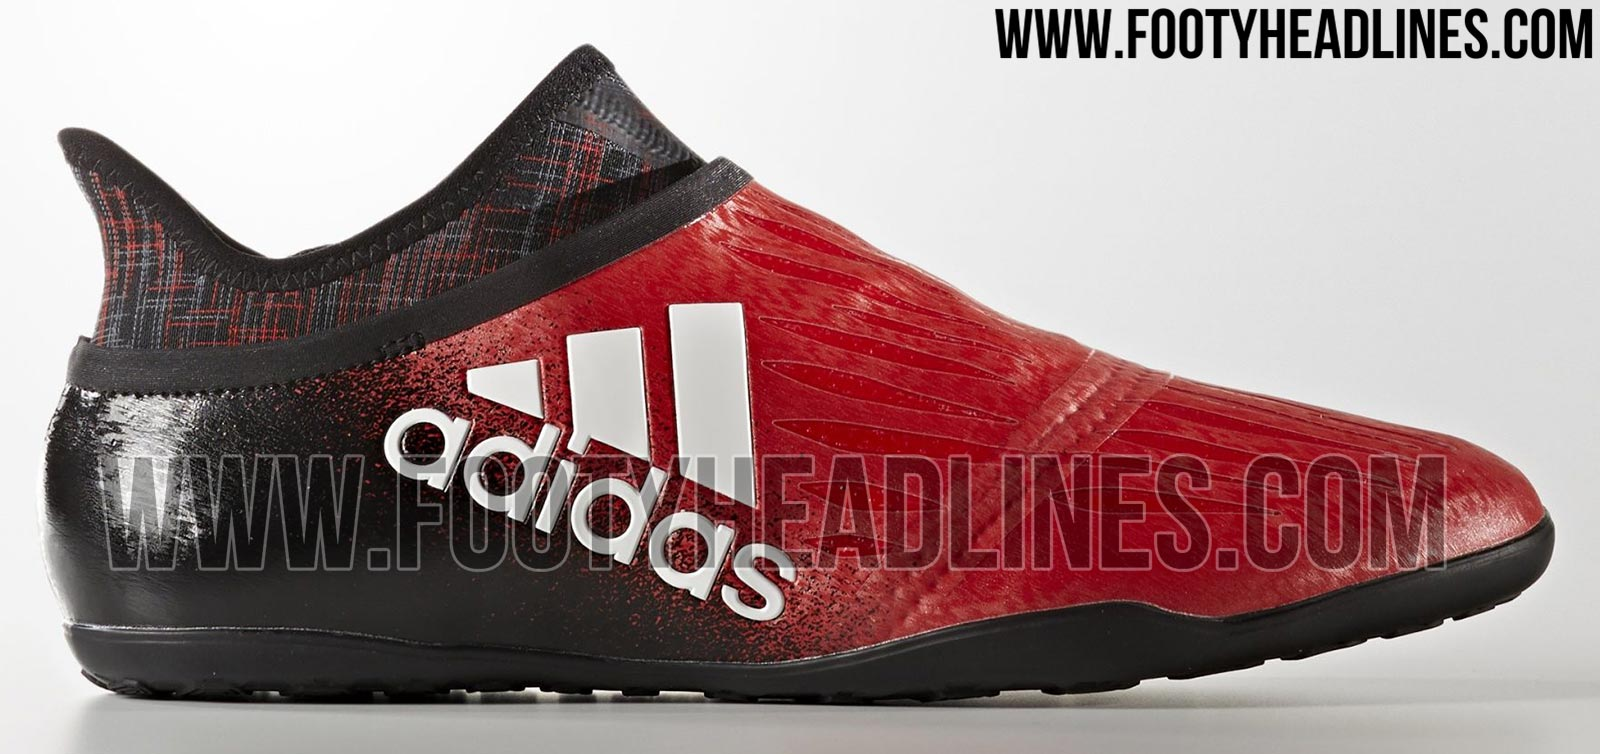 all new adidas x 16 purechaos indoor and turf boots. Black Bedroom Furniture Sets. Home Design Ideas